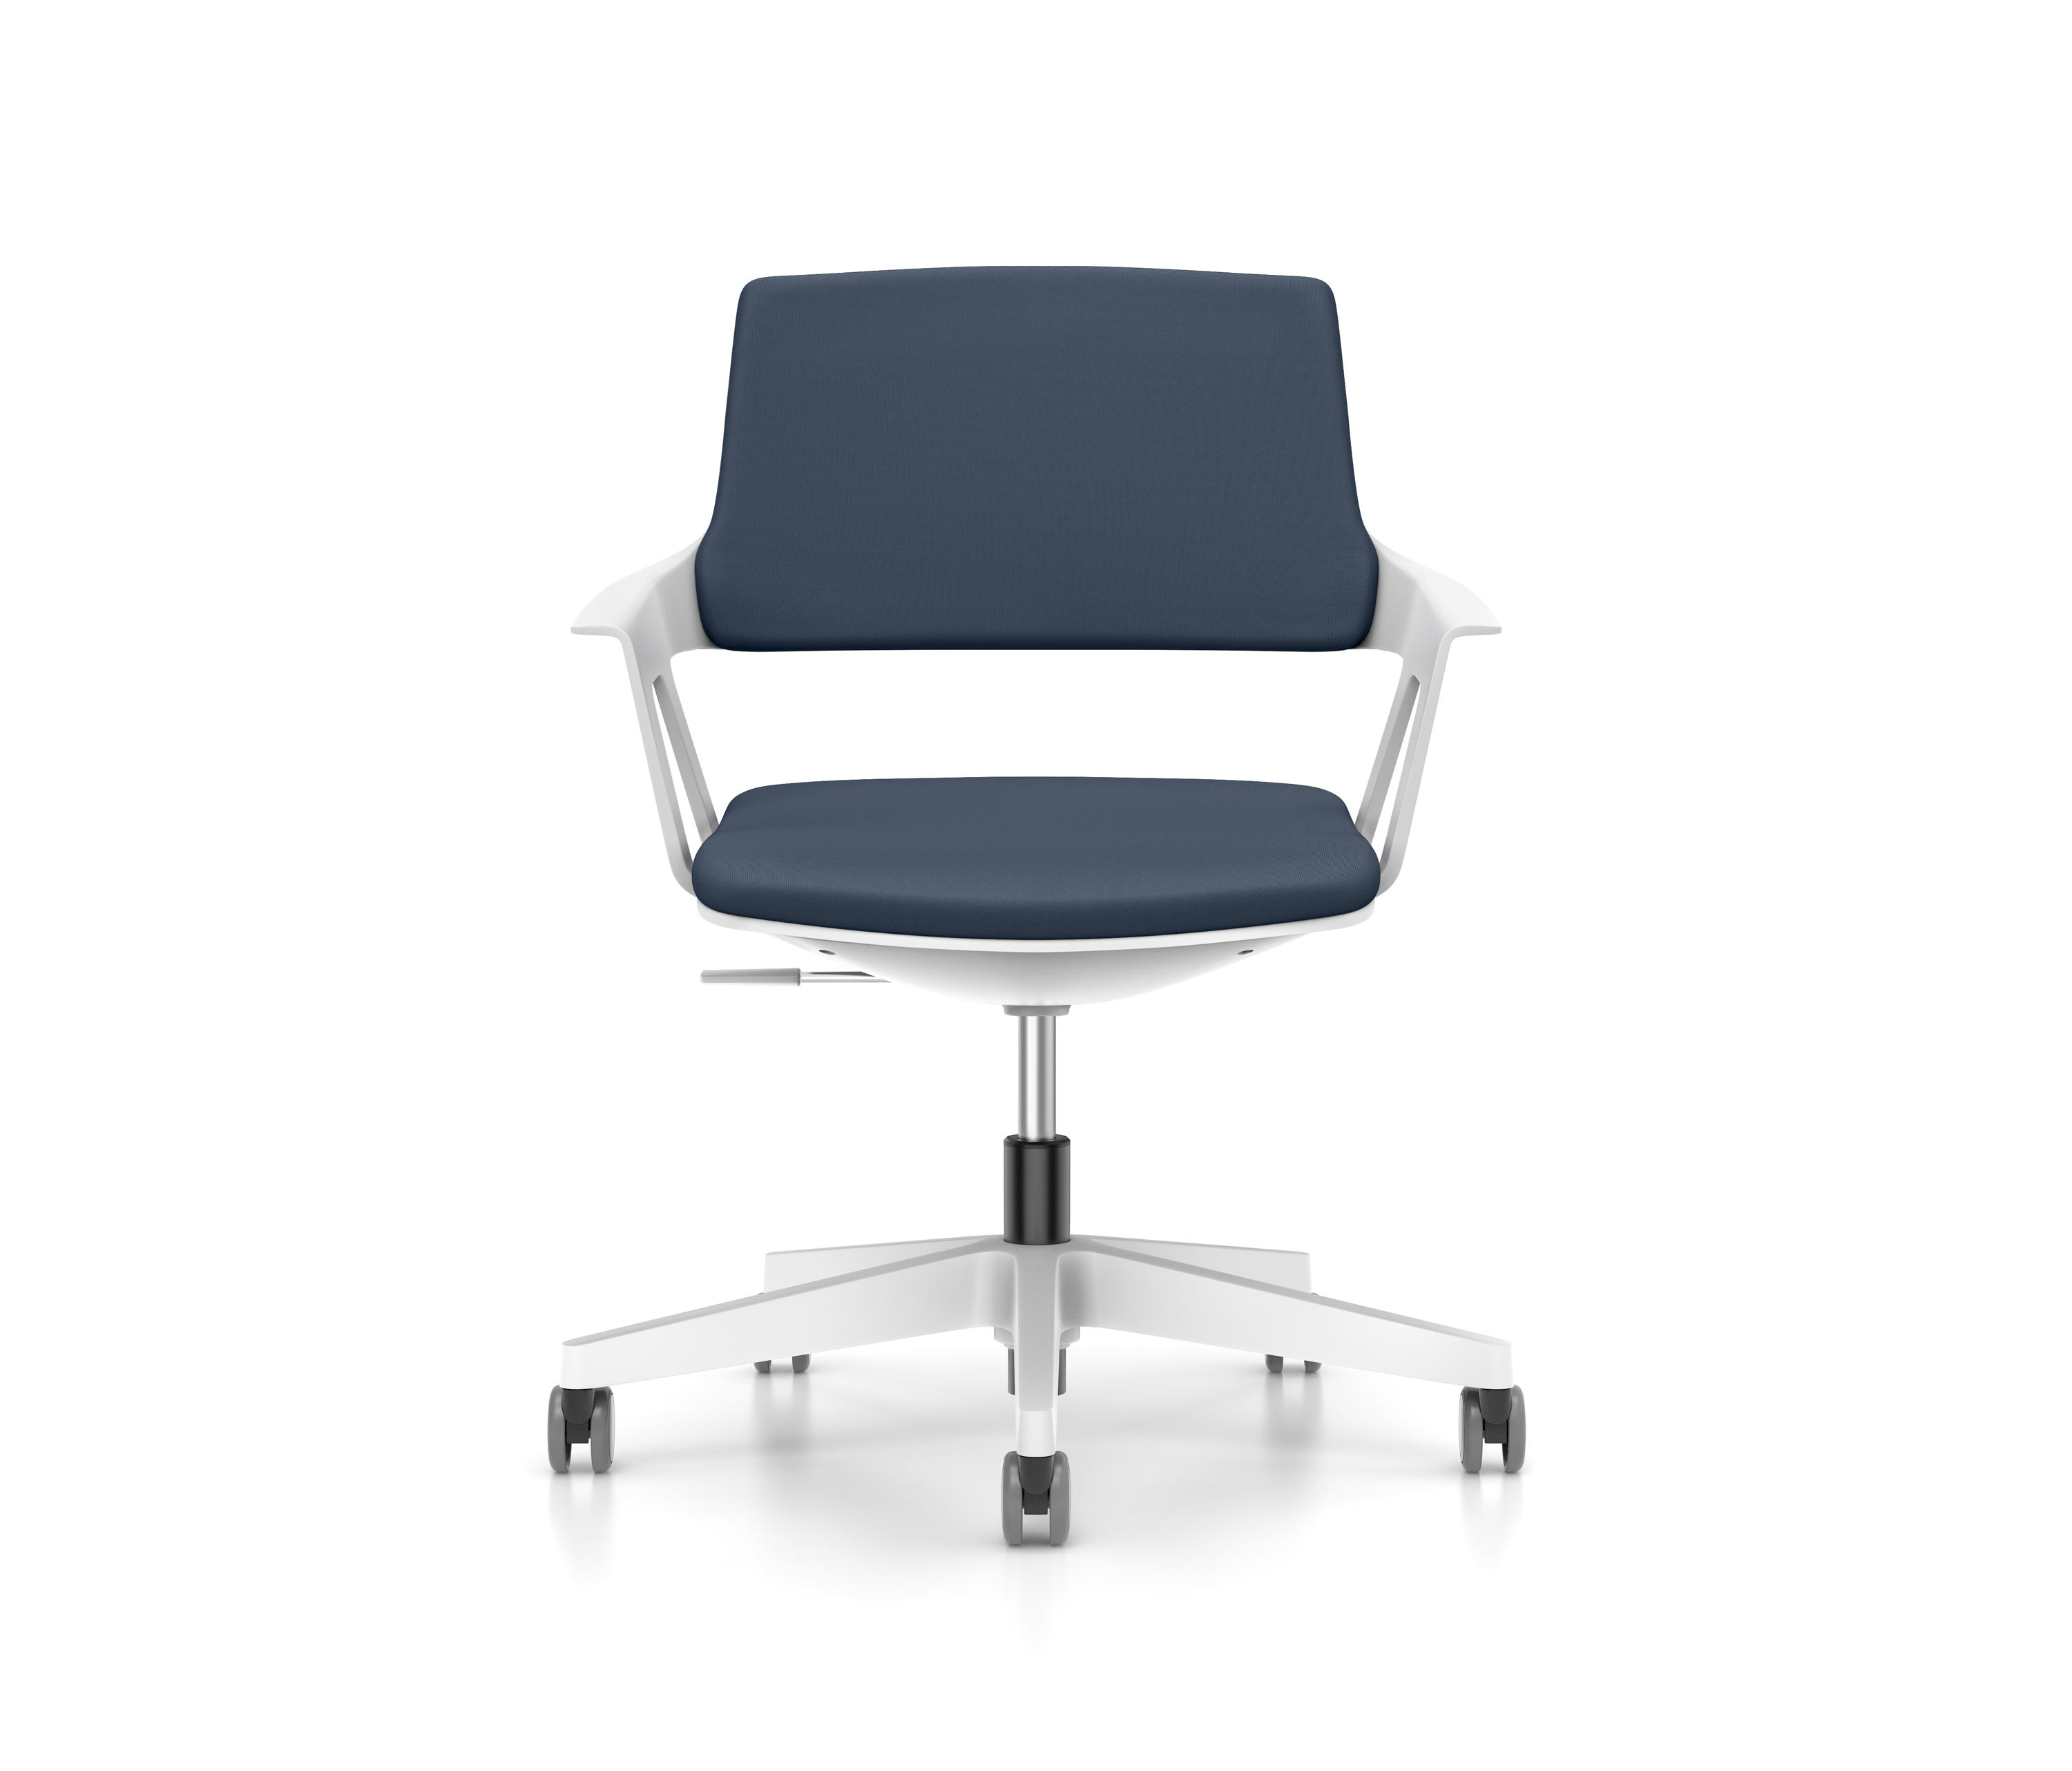 Movyis3 16m0 conference chairs from interstuhl b rom bel for Buero moebel